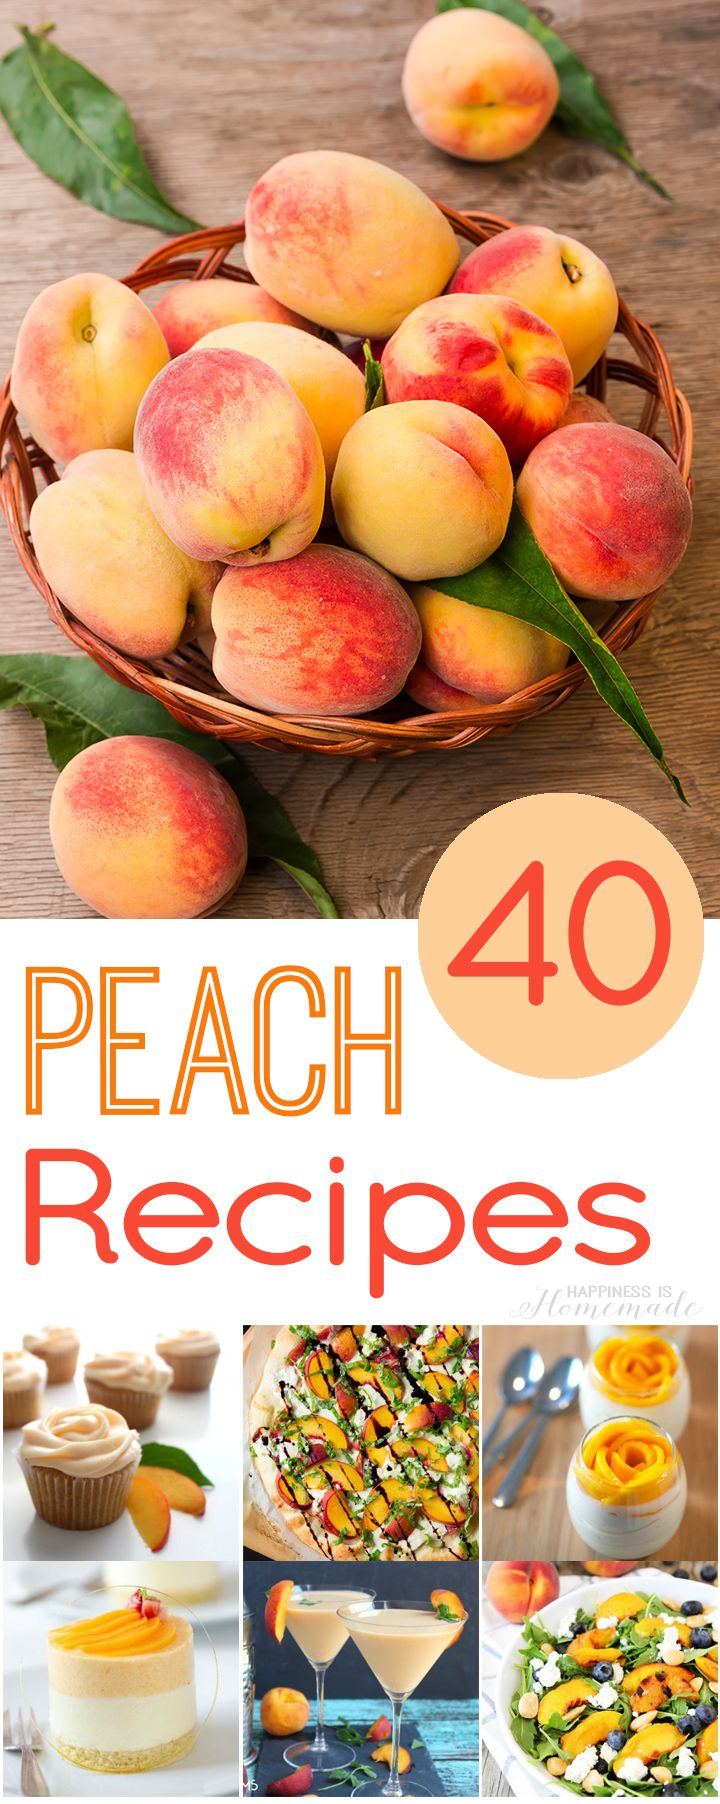 I can't wait to try some of these delicious peach recipes! 40 must-try summer peach recipes that ALL look incredible!